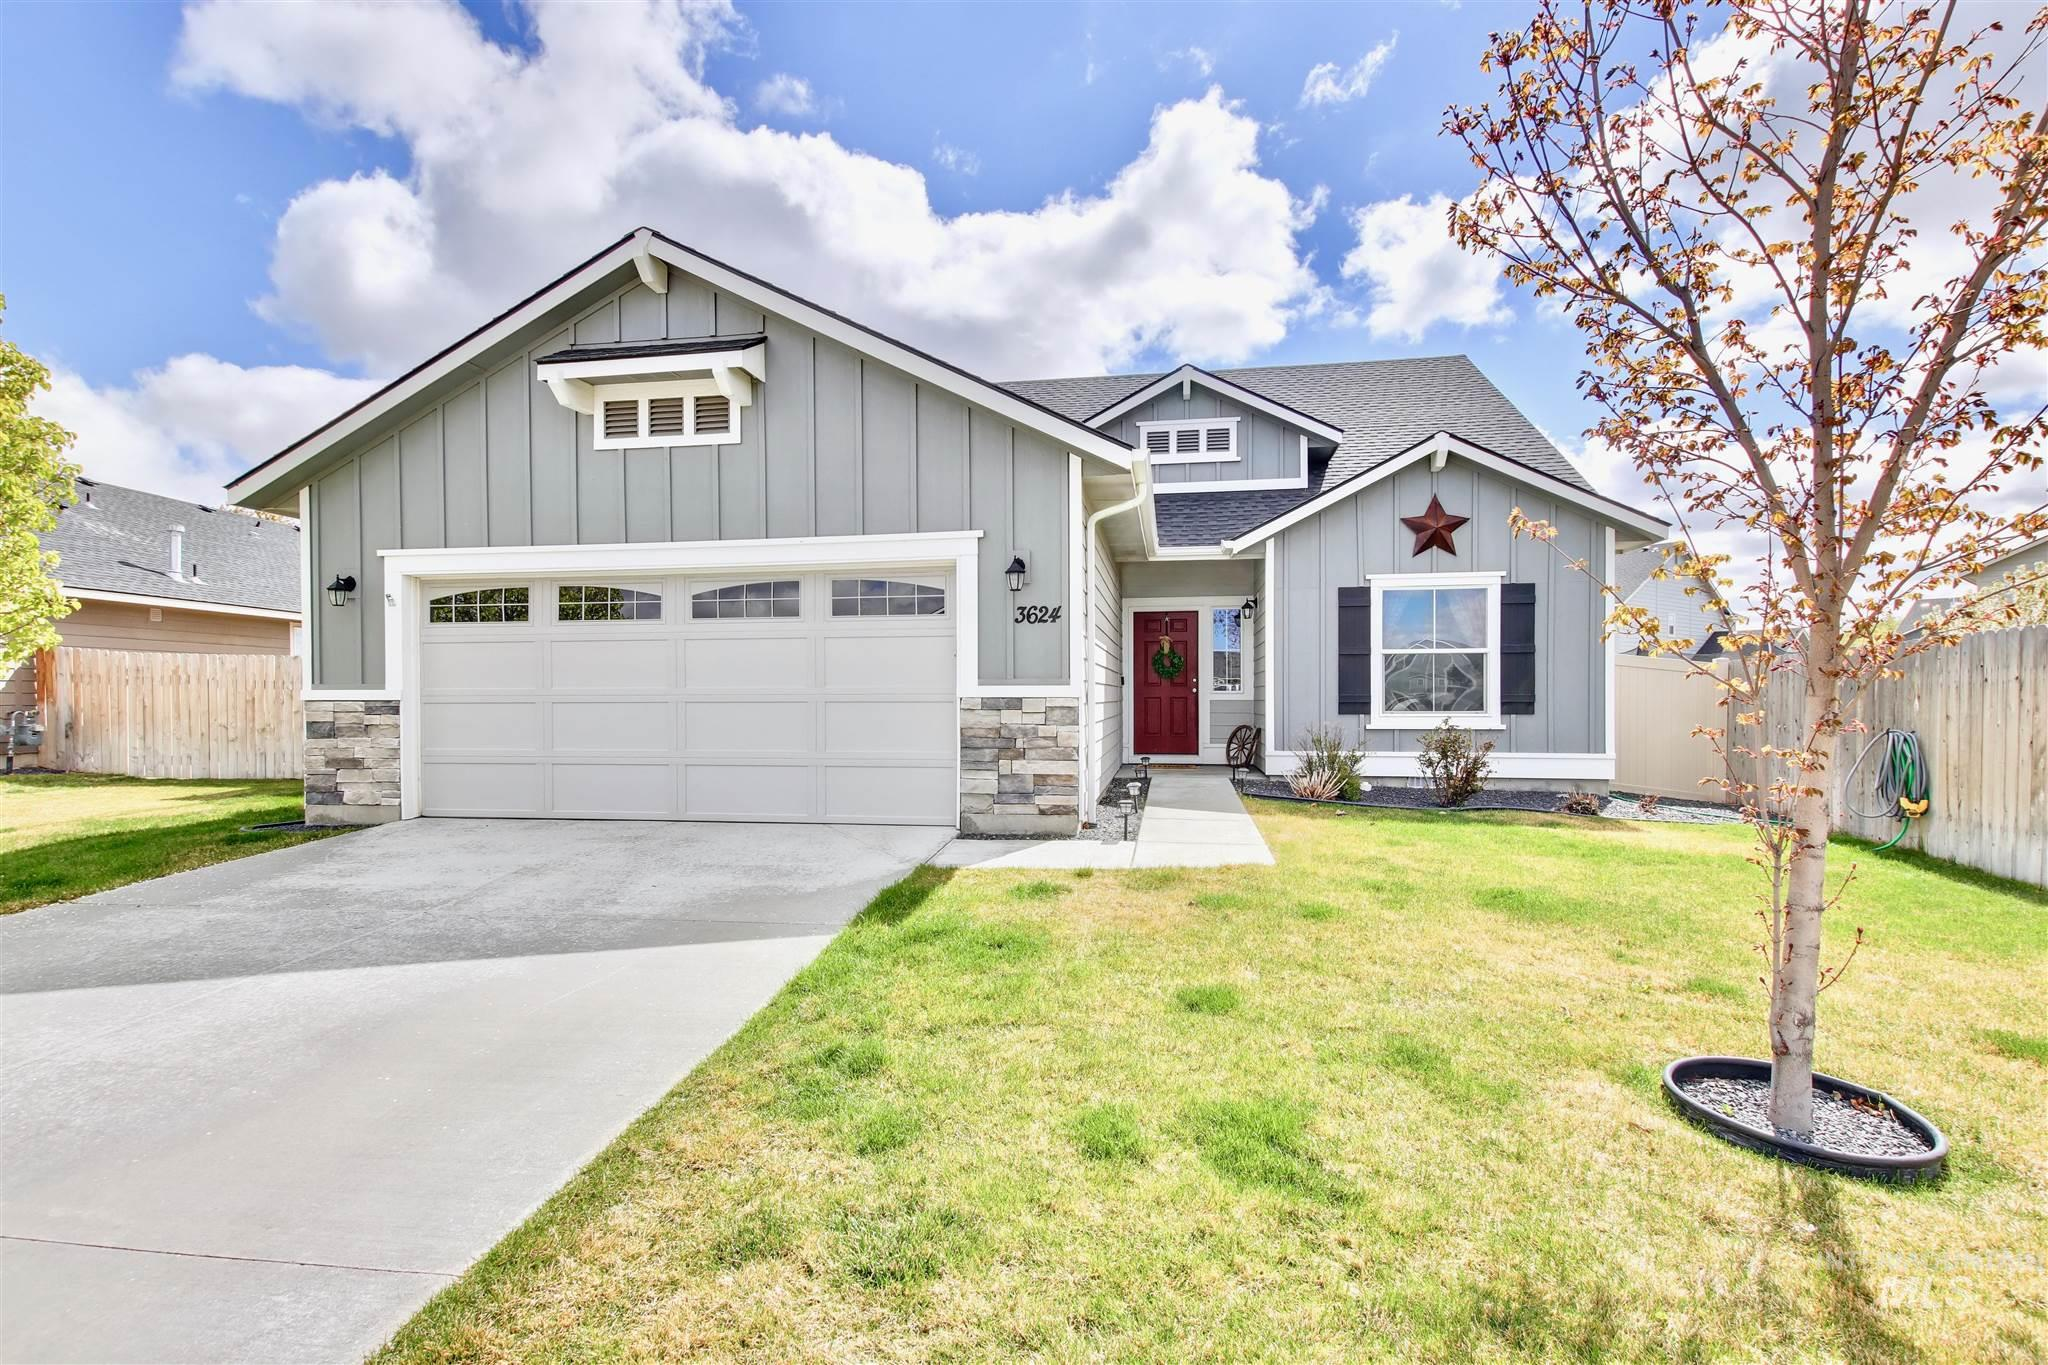 3624 S Wood River Ave Property Photo - Nampa, ID real estate listing